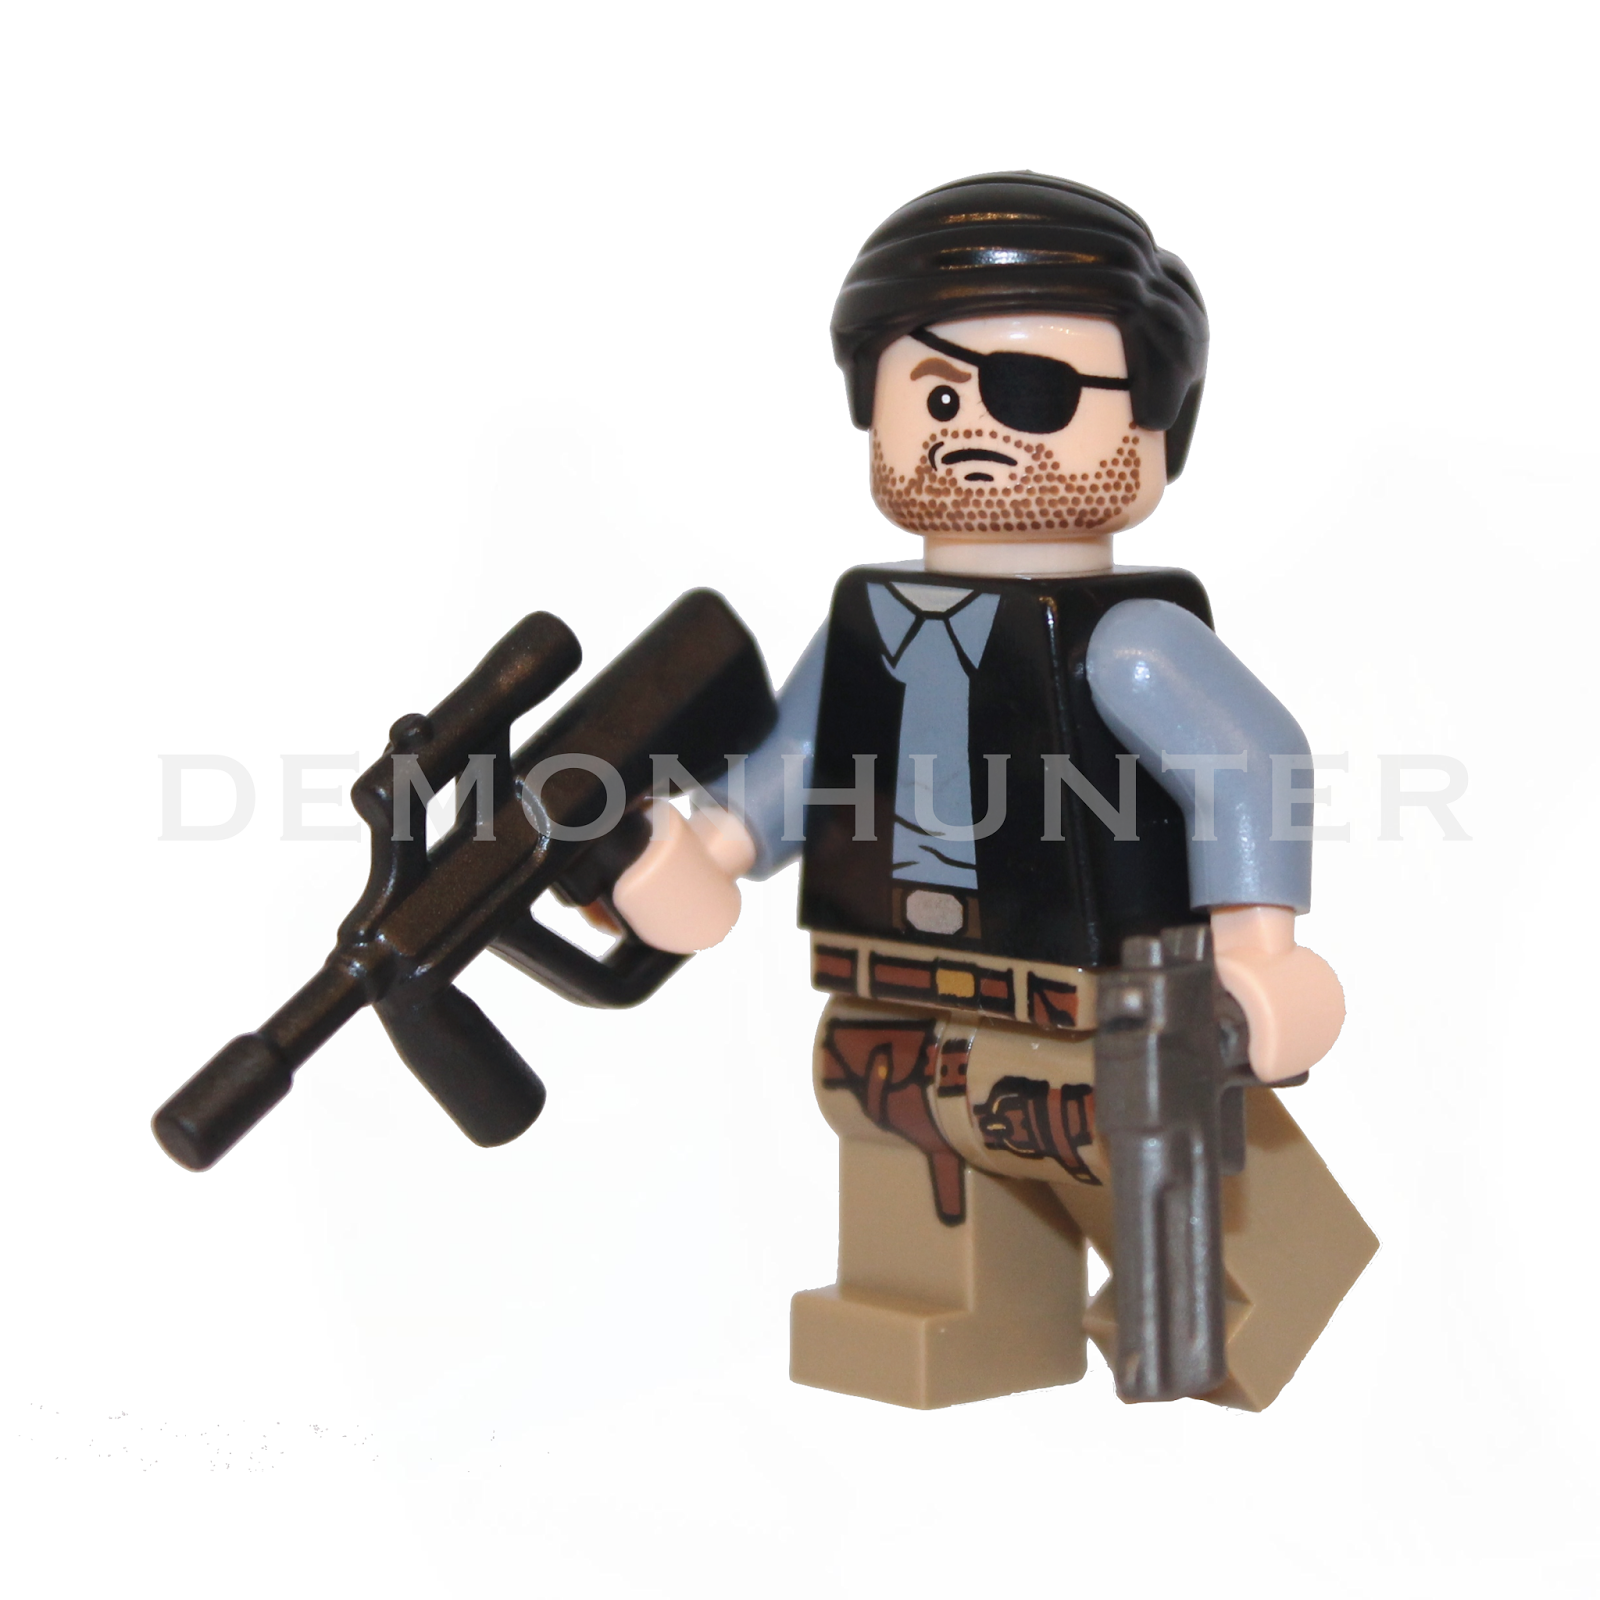 Lego Walking Dead, Lego The Governor, The Governor Lego, Custom Lego, Walking Dead Lego, Philip Blake, The Governor, The Walking Dead, , Lego Blog